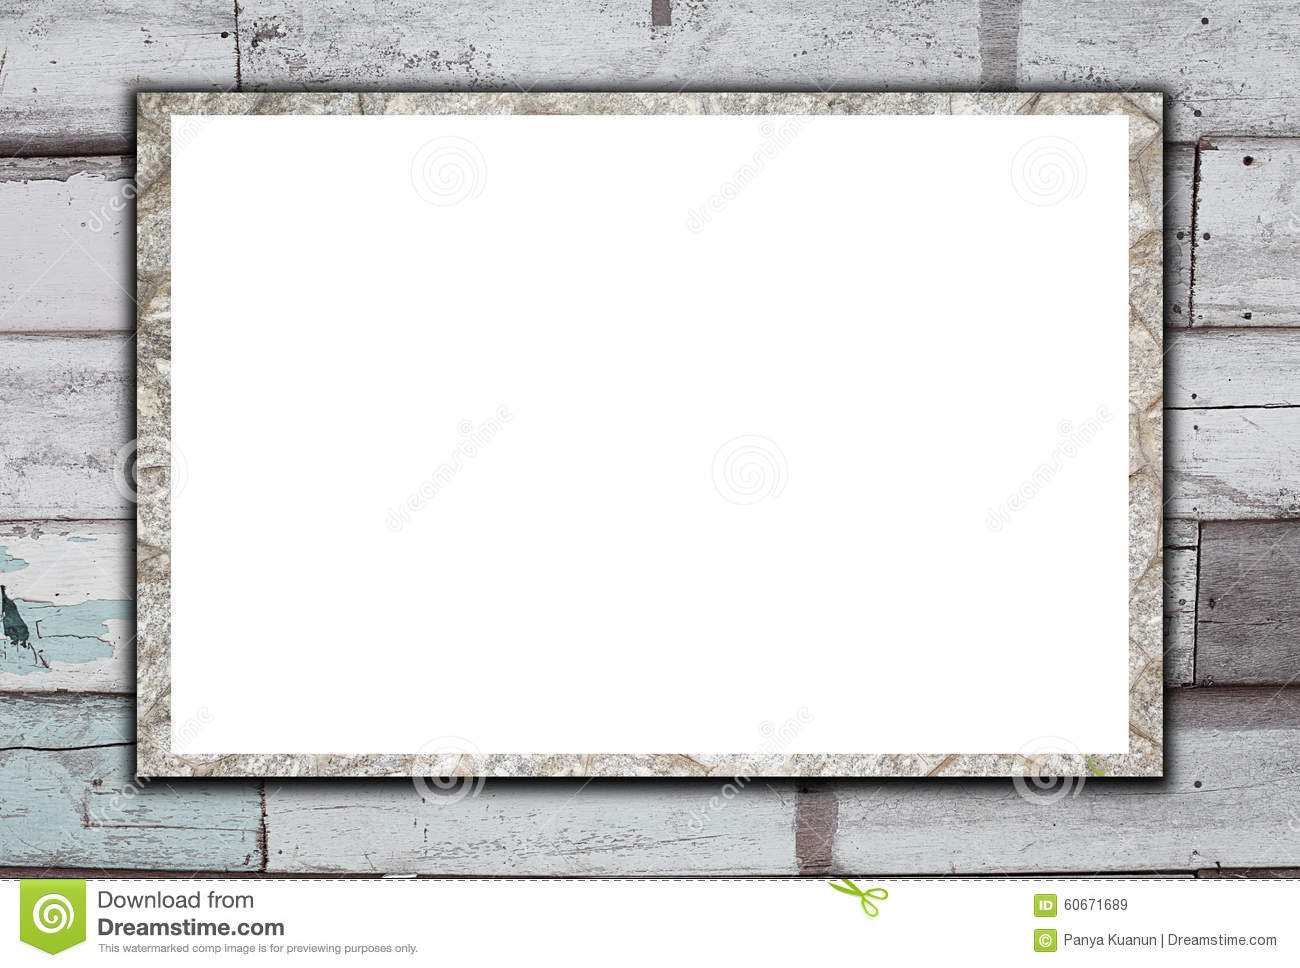 Blank stone billboard on Old Wood Background.